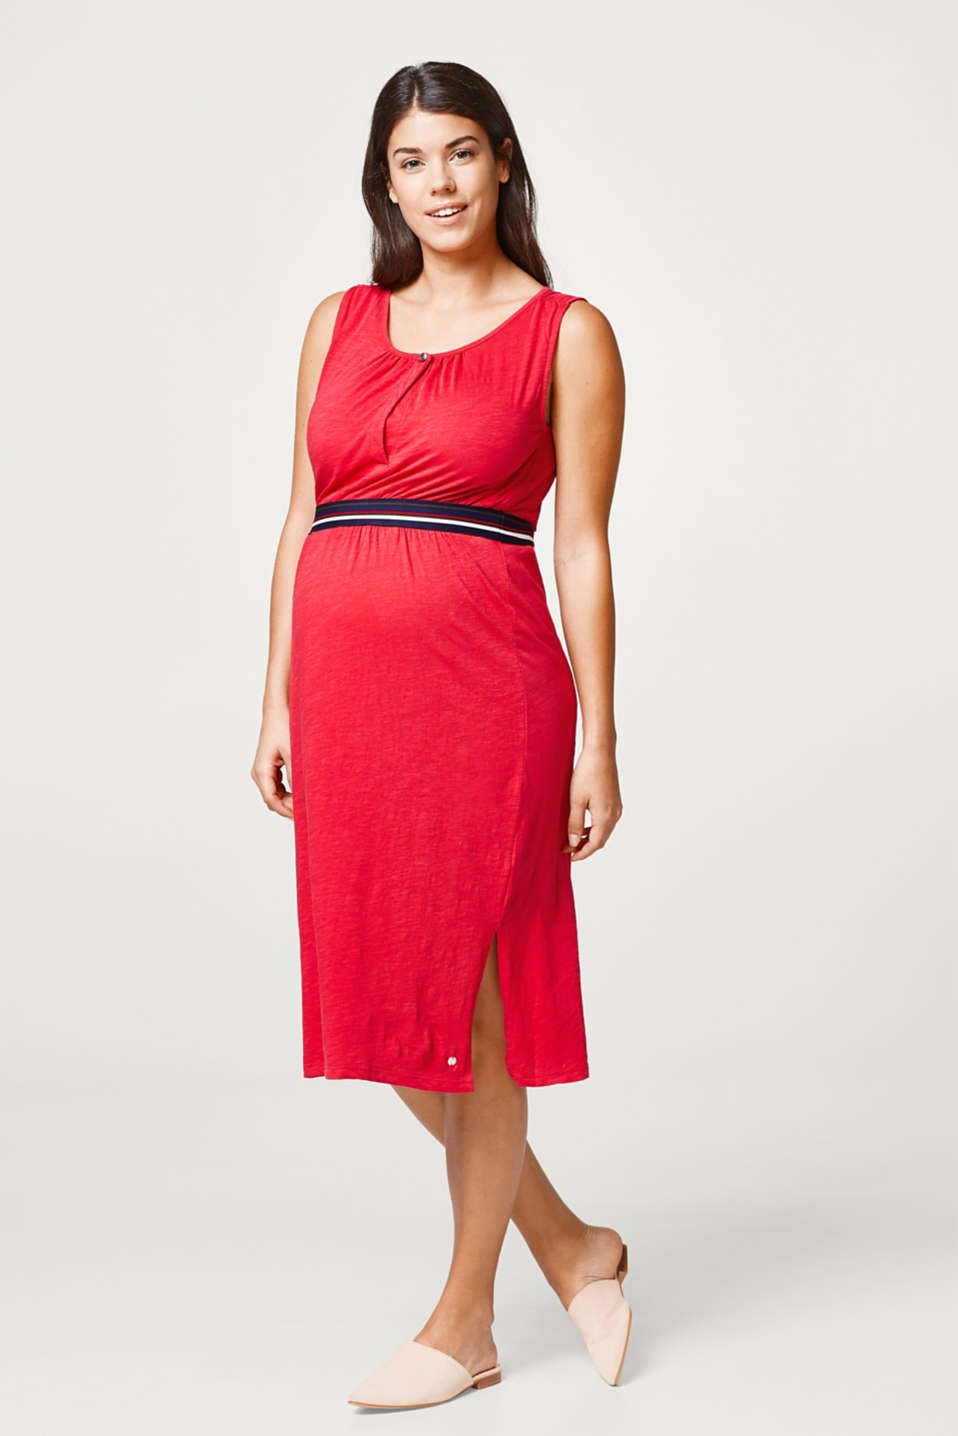 Slub dress with nursing top and elasticated waistband